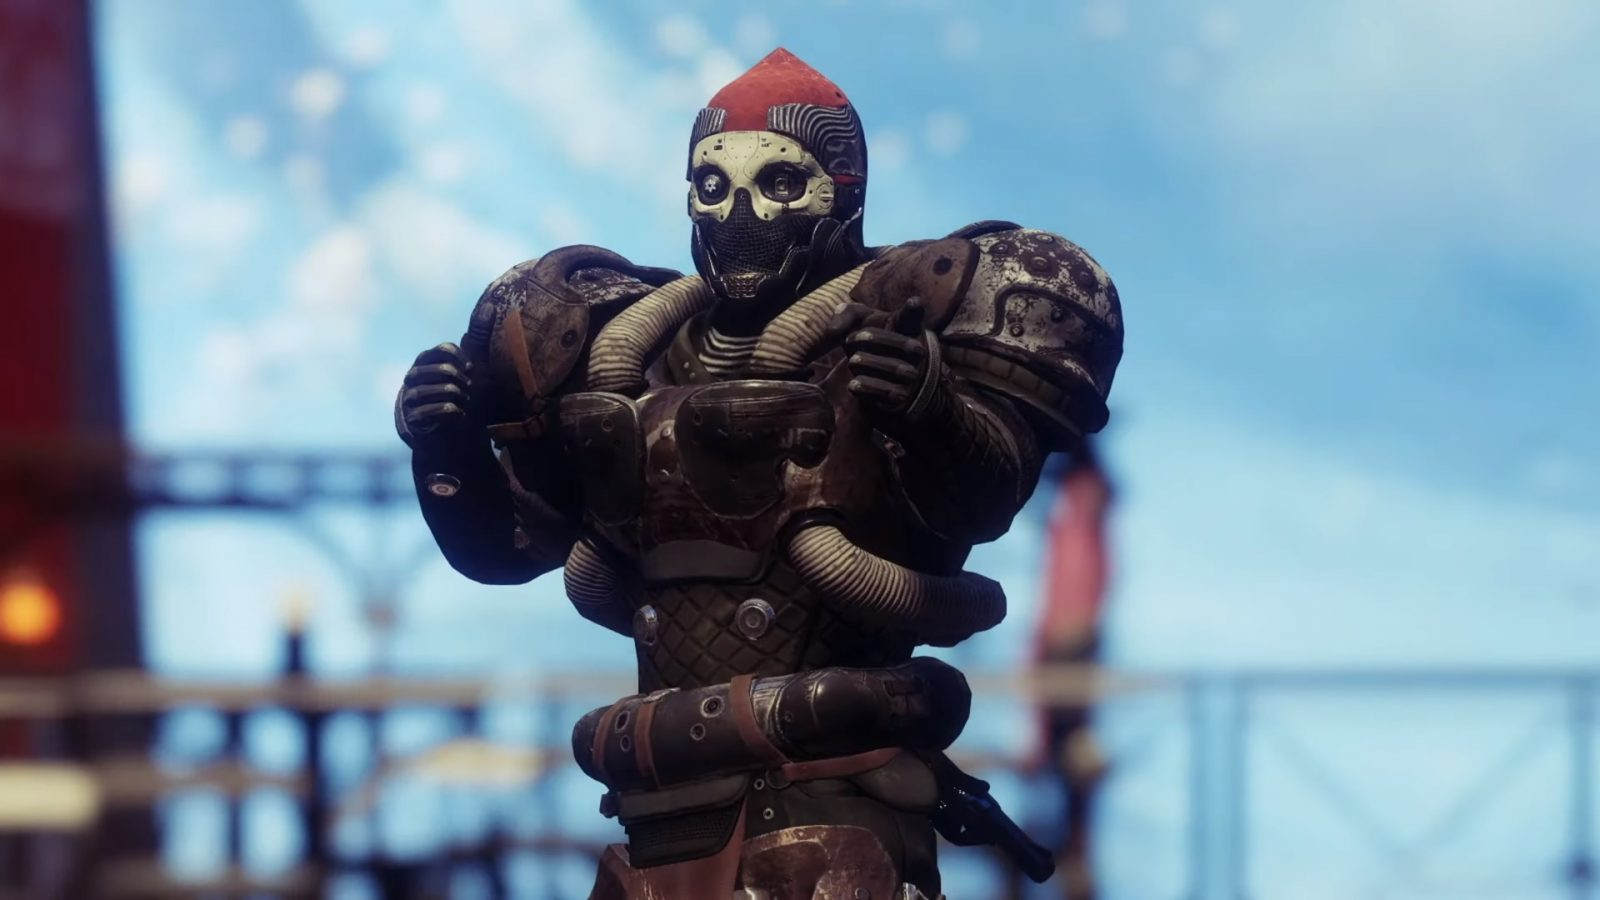 The Destiny 2 community's quest for 999 power was a bust – but Bungie's keeping hope alive